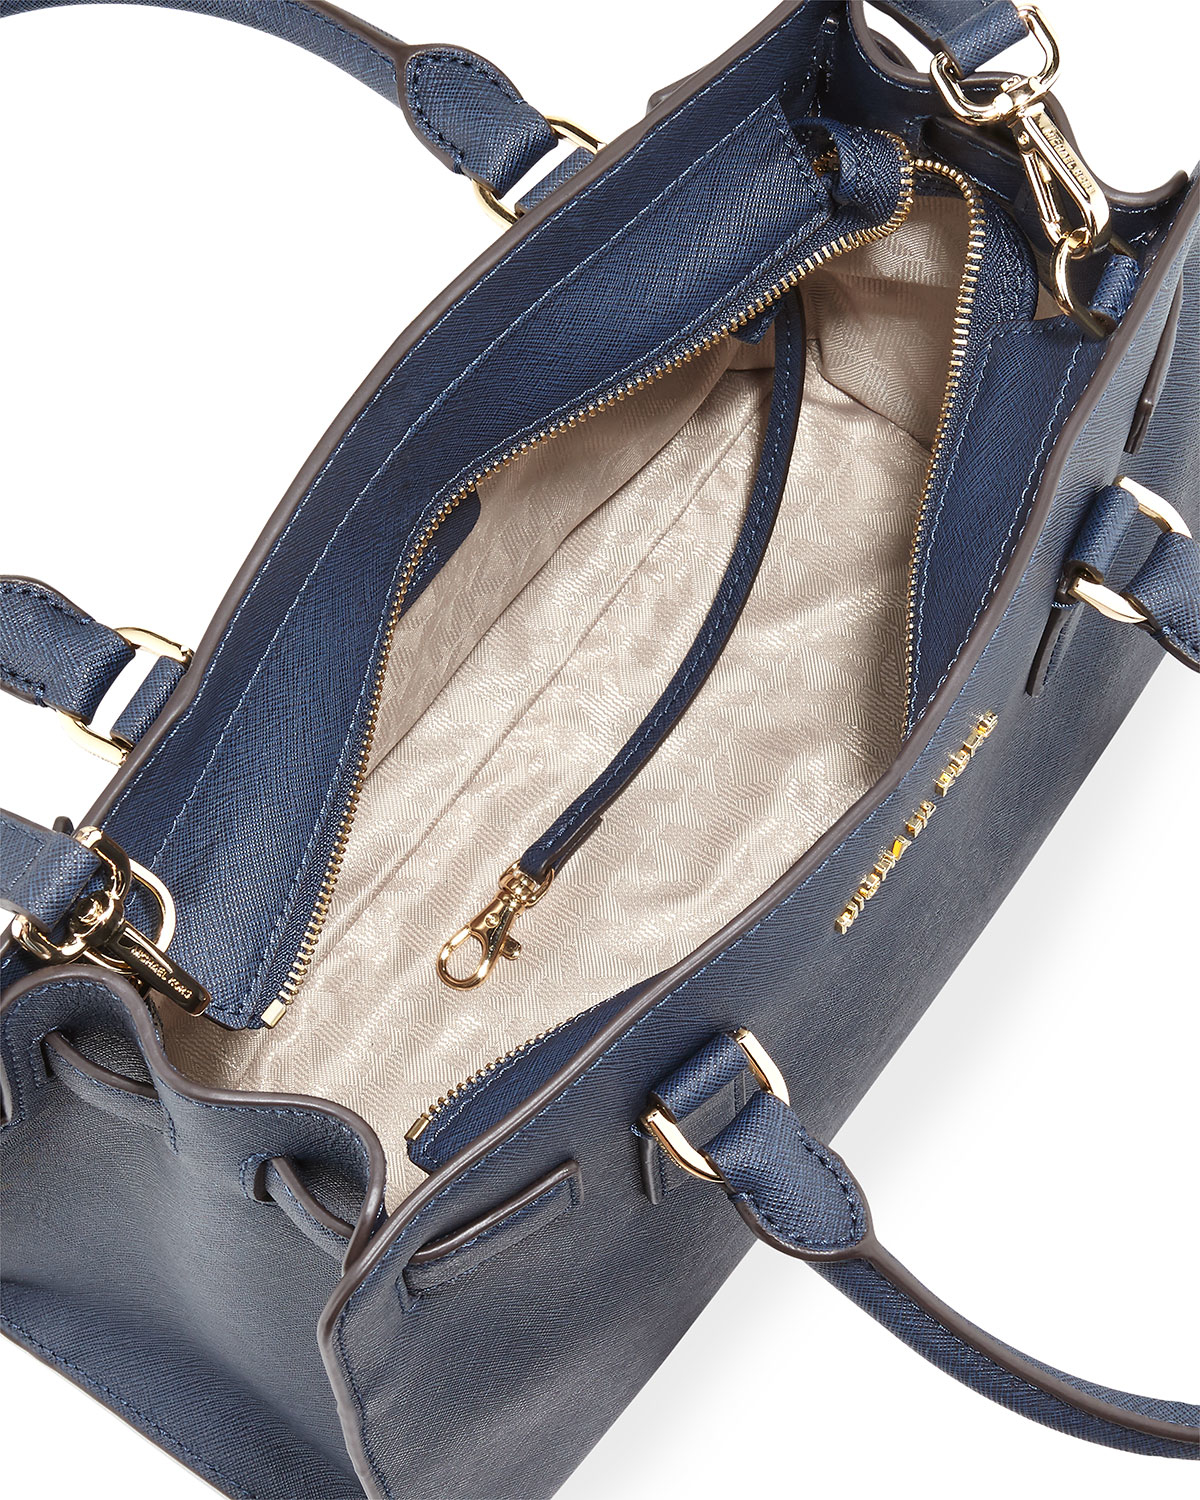 848efd634ad3 Gallery. Previously sold at: Neiman Marcus · Women's Michael By Michael  Kors Dillon ...